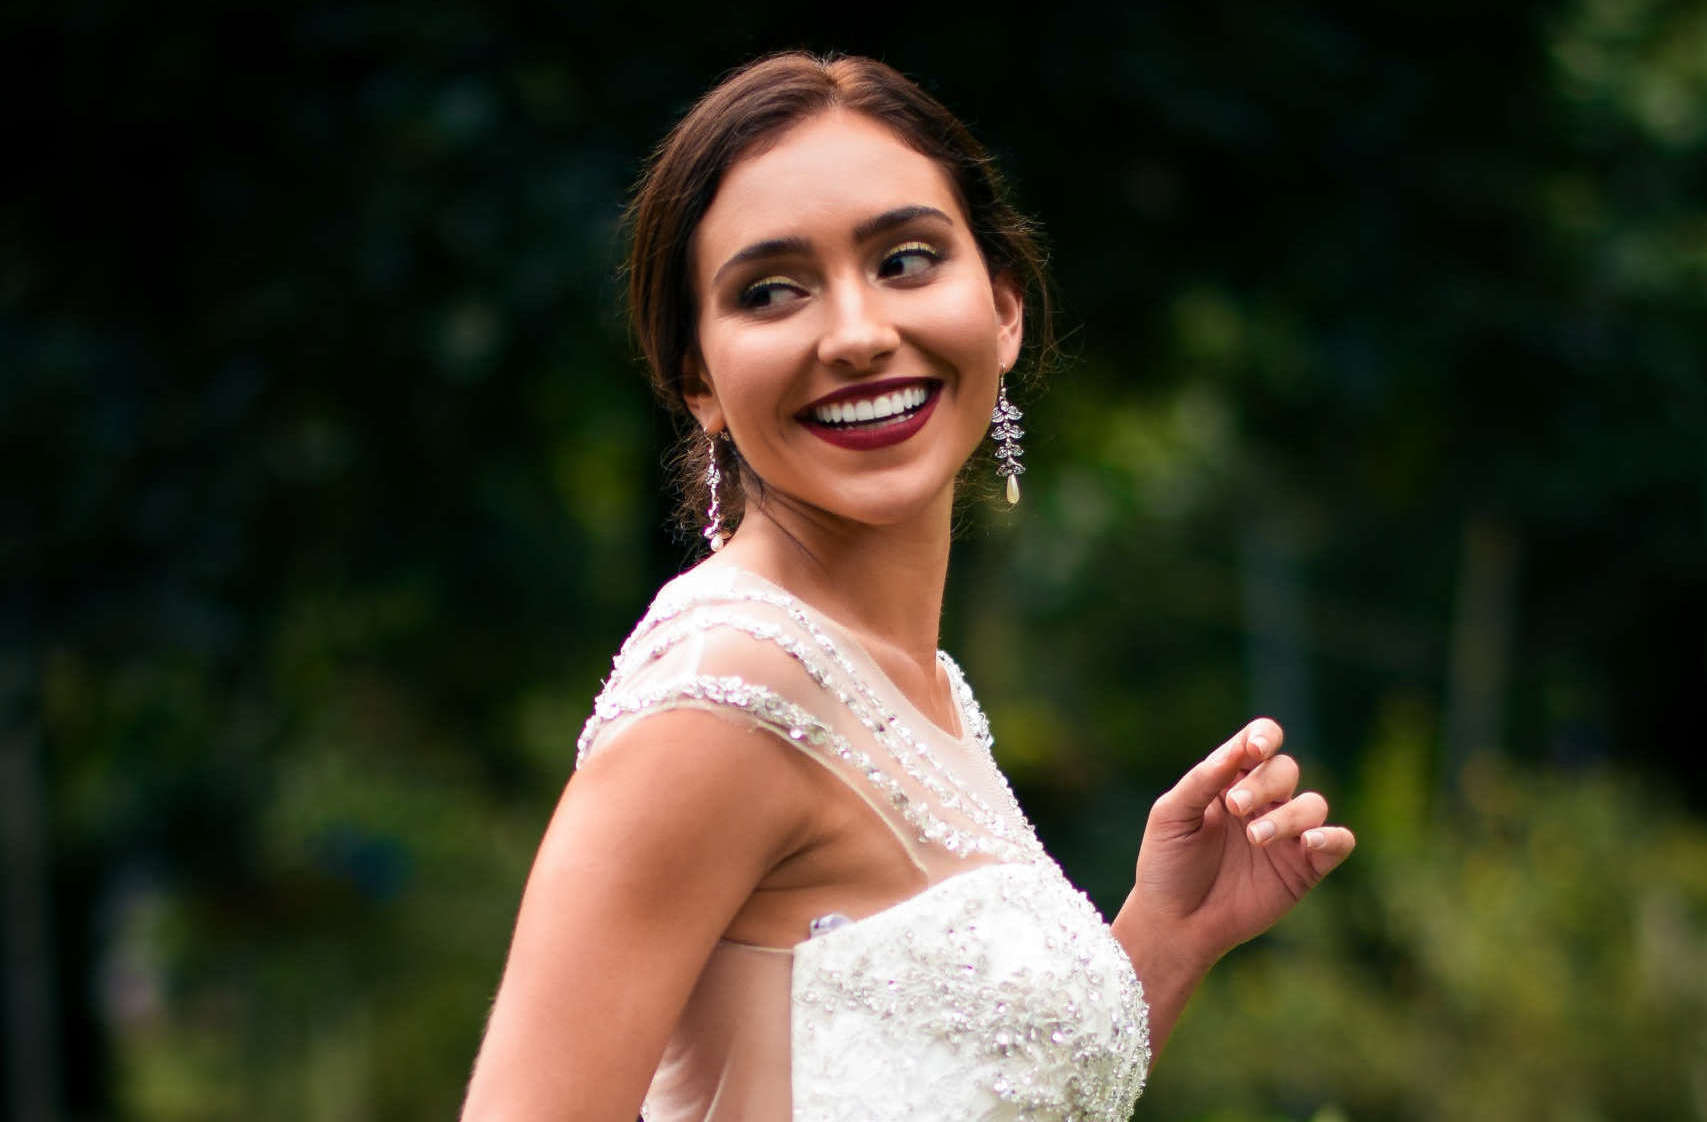 5 Beauty Secrets Every Bride Should Know Before Her Wedding Day